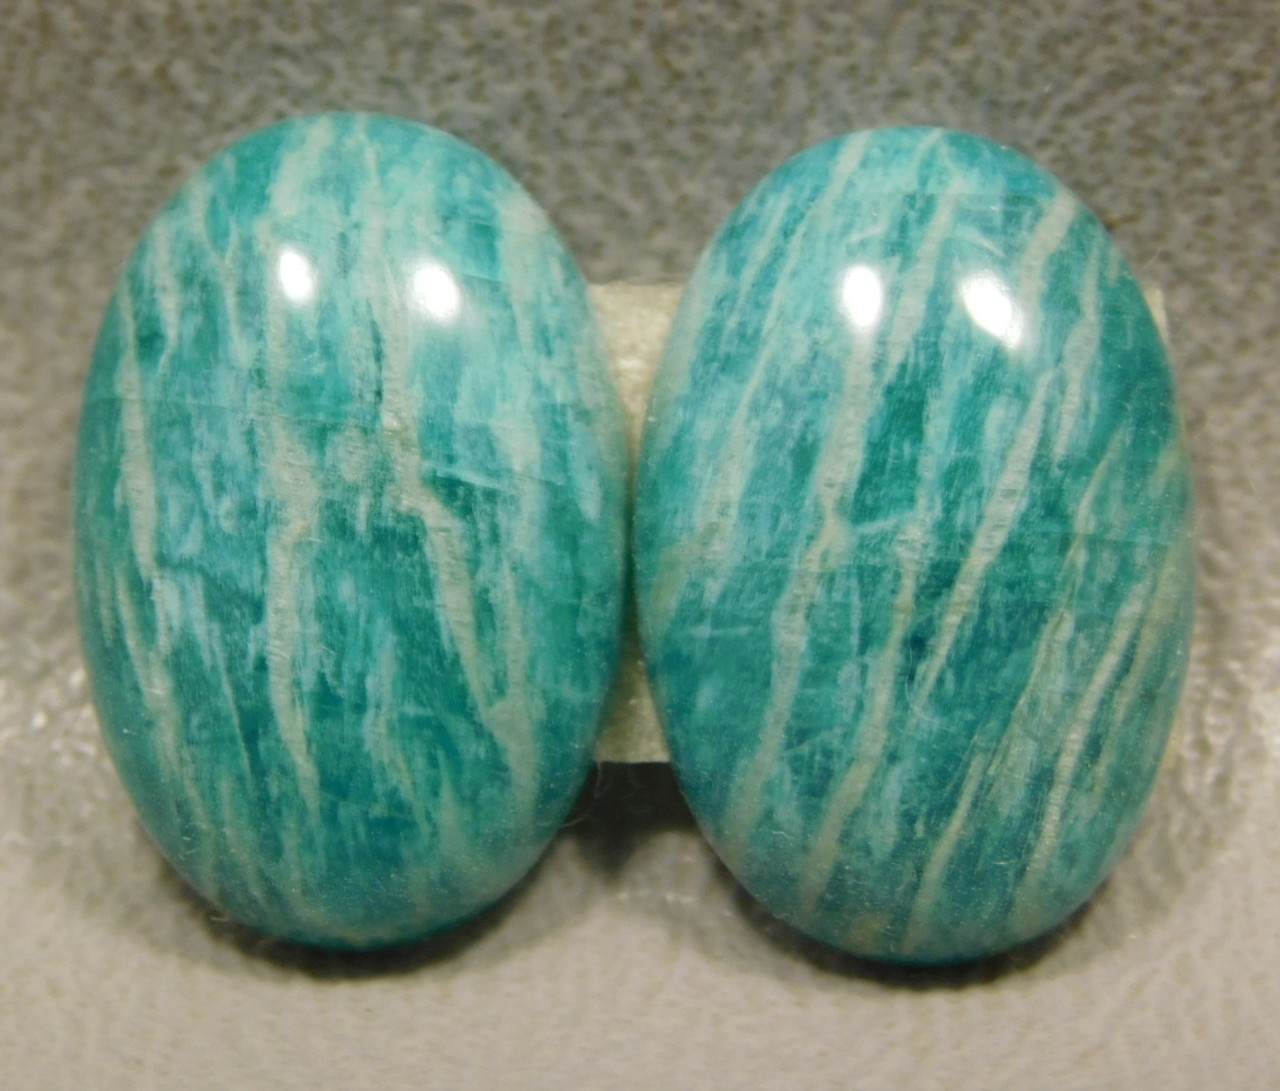 Green Amazonite Matched Pairs Cabochons Wire Wrapping #18